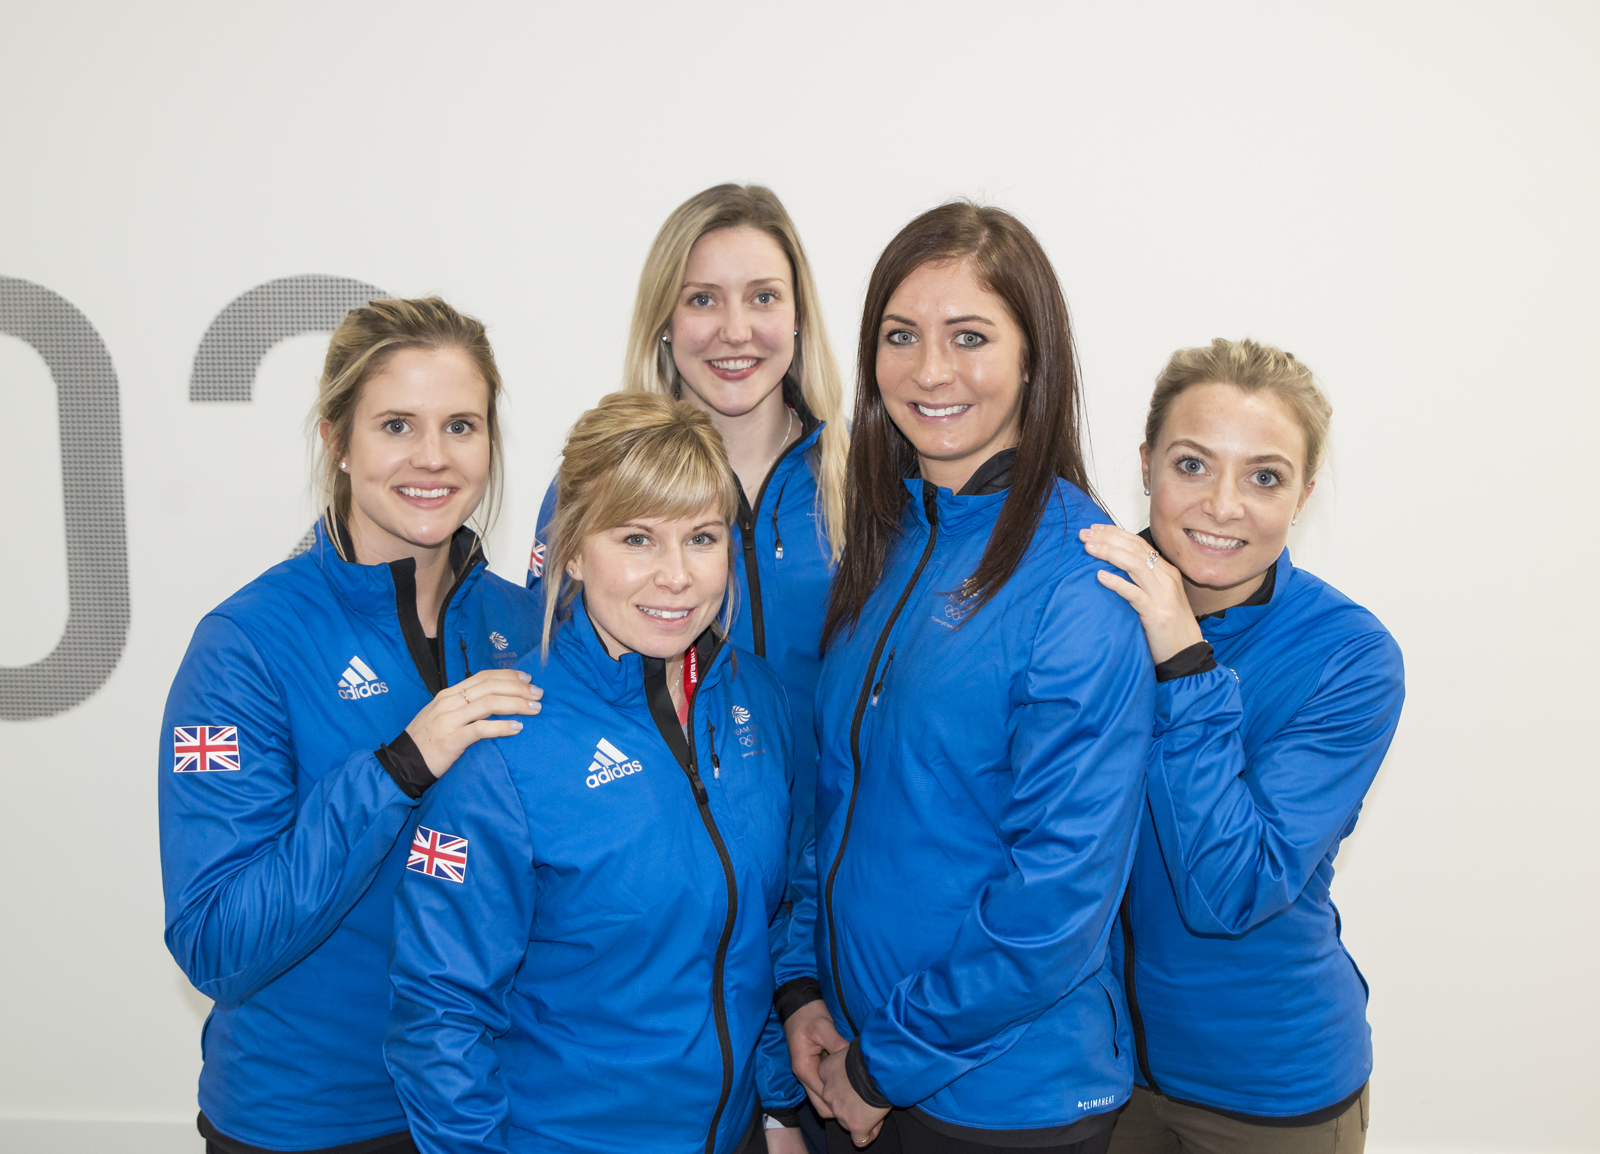 Coach excited by Team Muirhead's prospects in PyeongChang